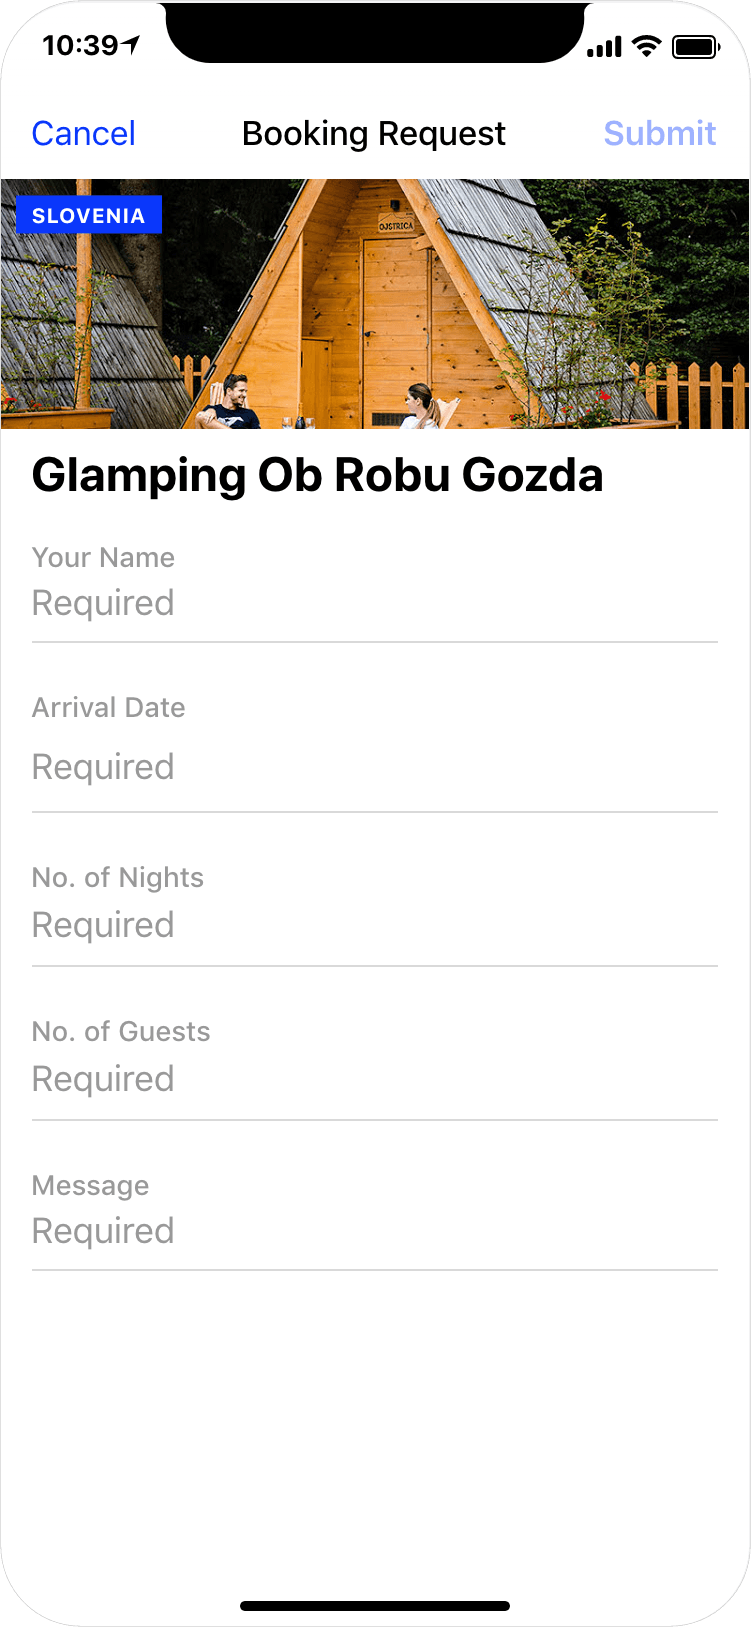 Glamping in Slovenia - booking request, app screenshot